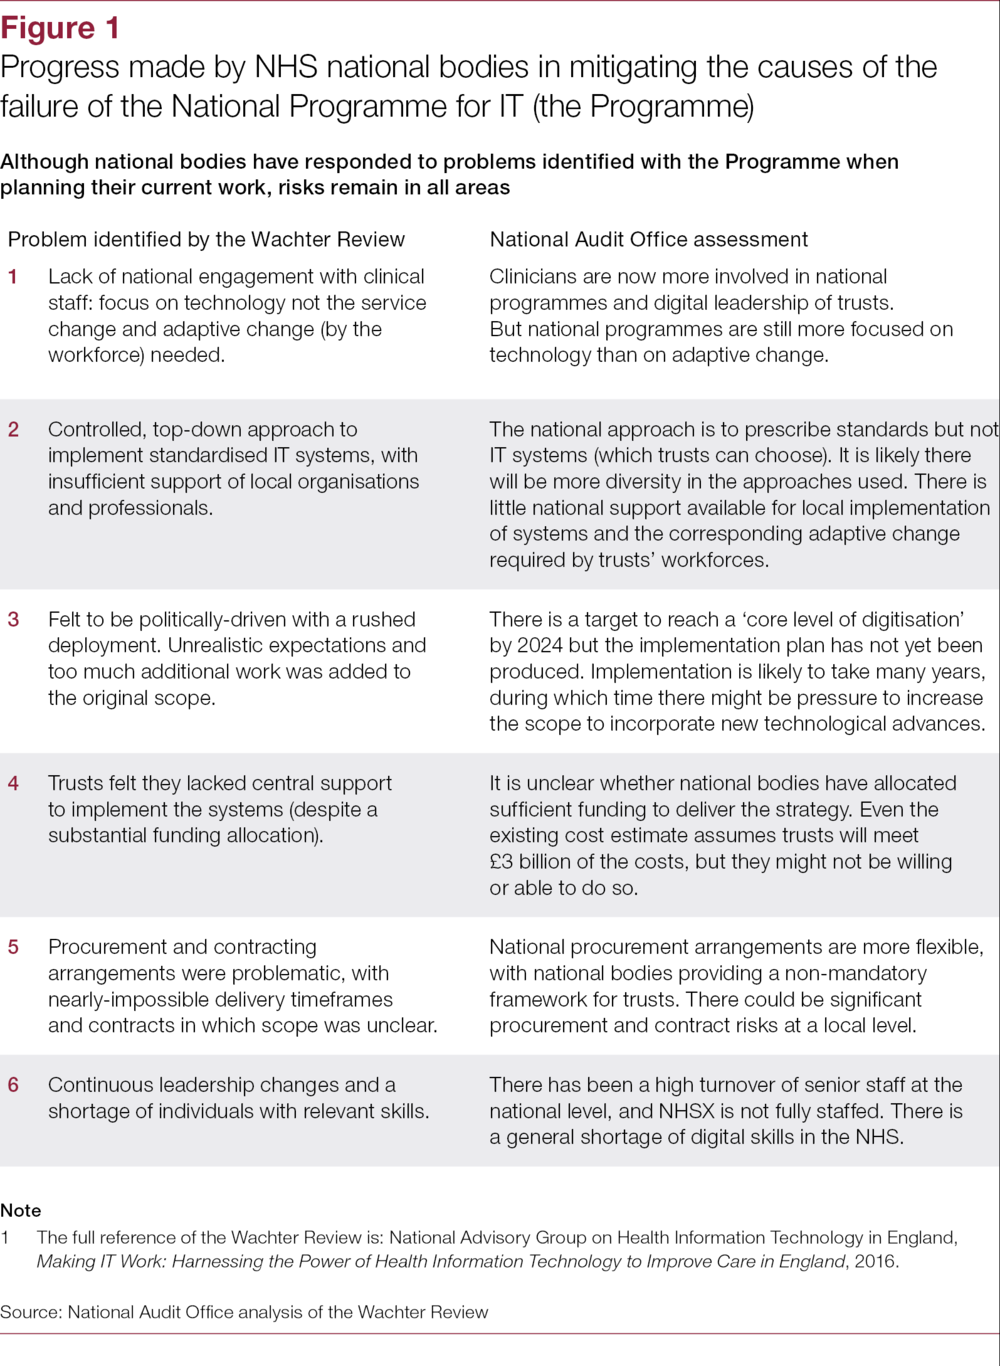 """Image from NAO Report """"Digital Transformation in the NHS"""" May 2020 - table is titled """"Progress made by NHS national bodies in mitigating teh causes of the failure of the National Programme for IT"""""""